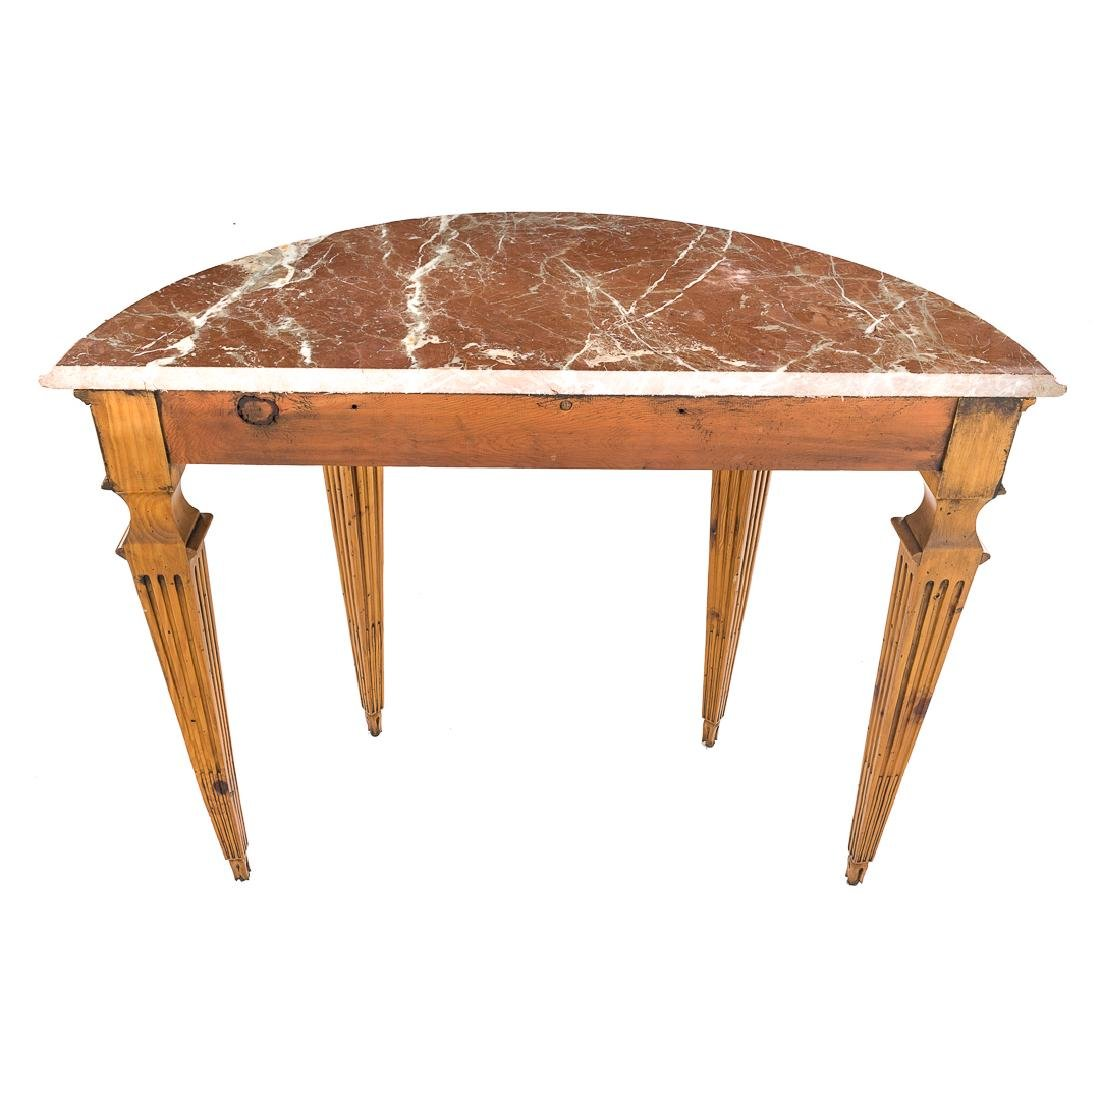 Louis XVI style pine marble top console table, - 5